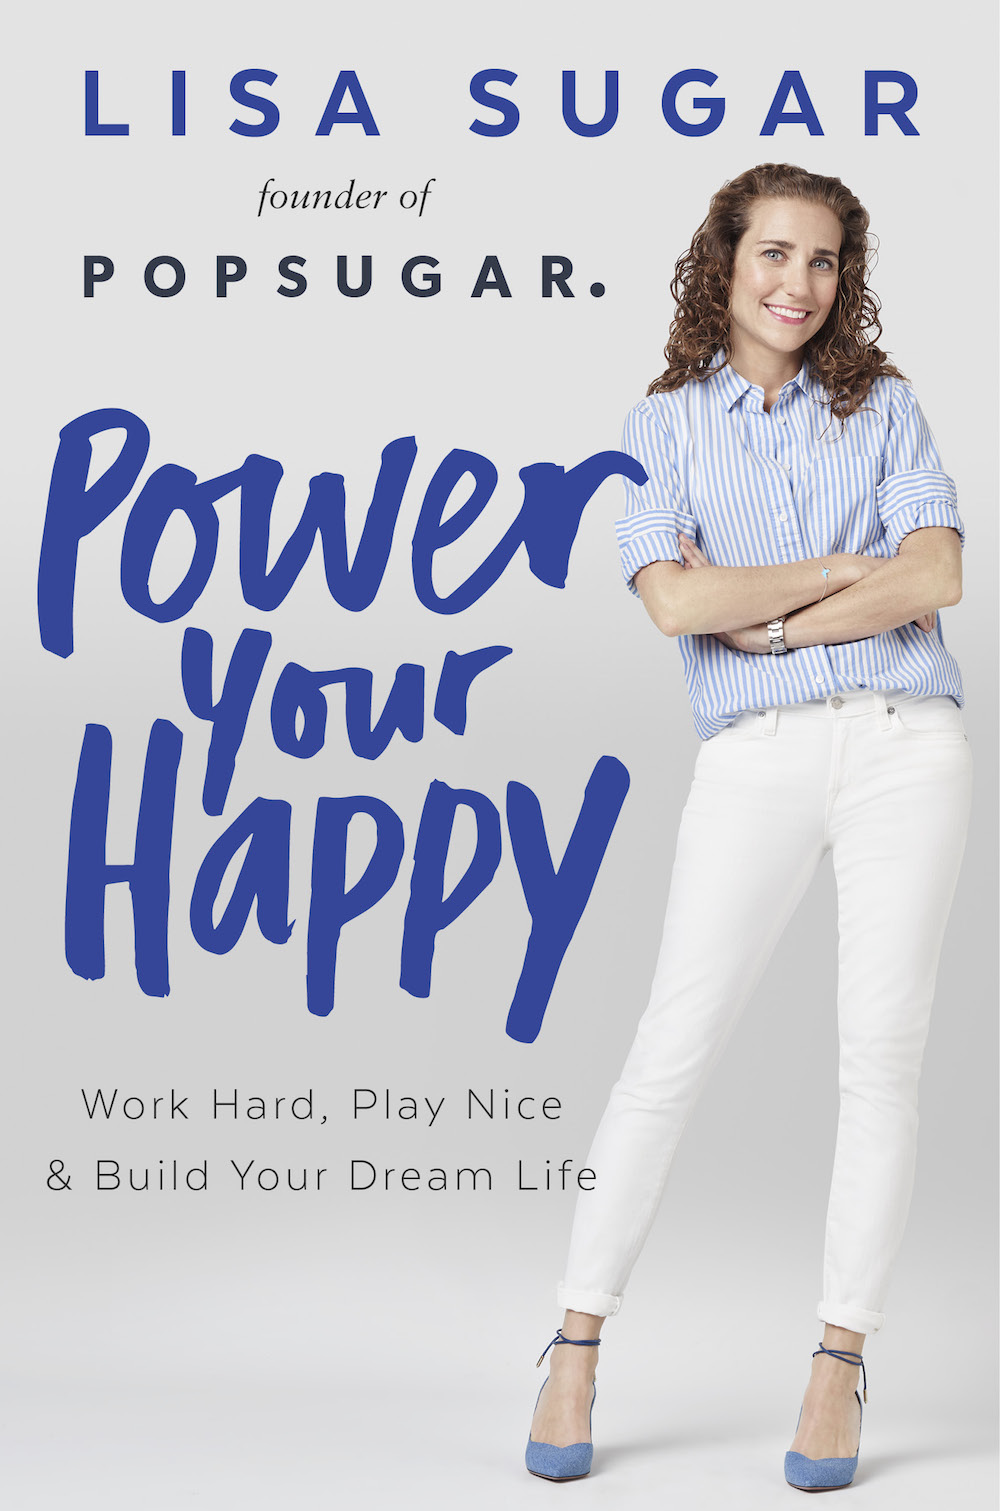 The cover of Sugar's first book